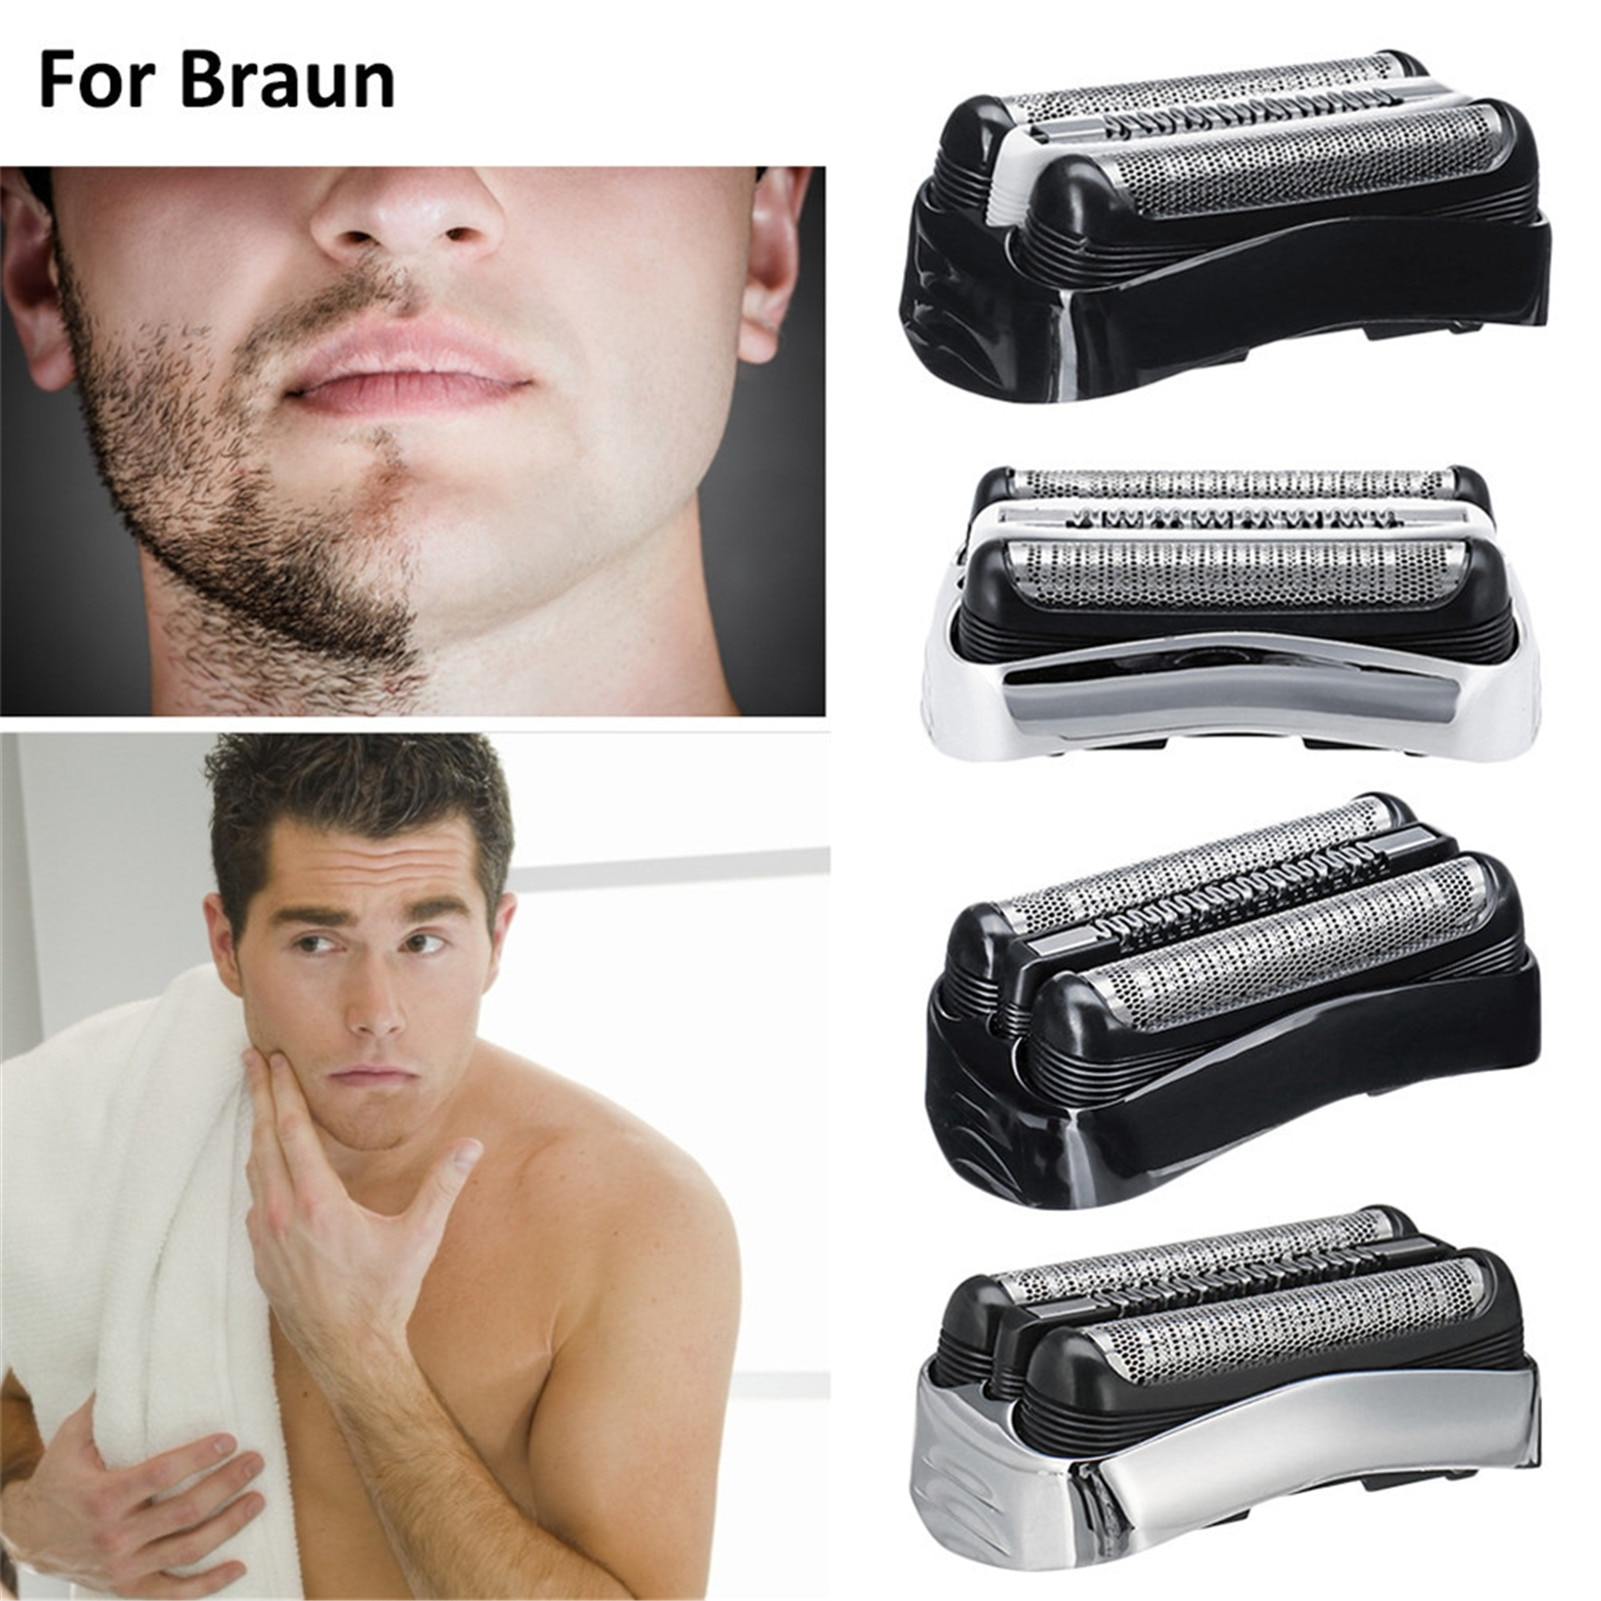 Replacement Electric Shaver Head For Braun 32B 32S 21B 21S 3 Series 300S 301S 310S 320S 330S 340S 360S 380S 3000S 3010S